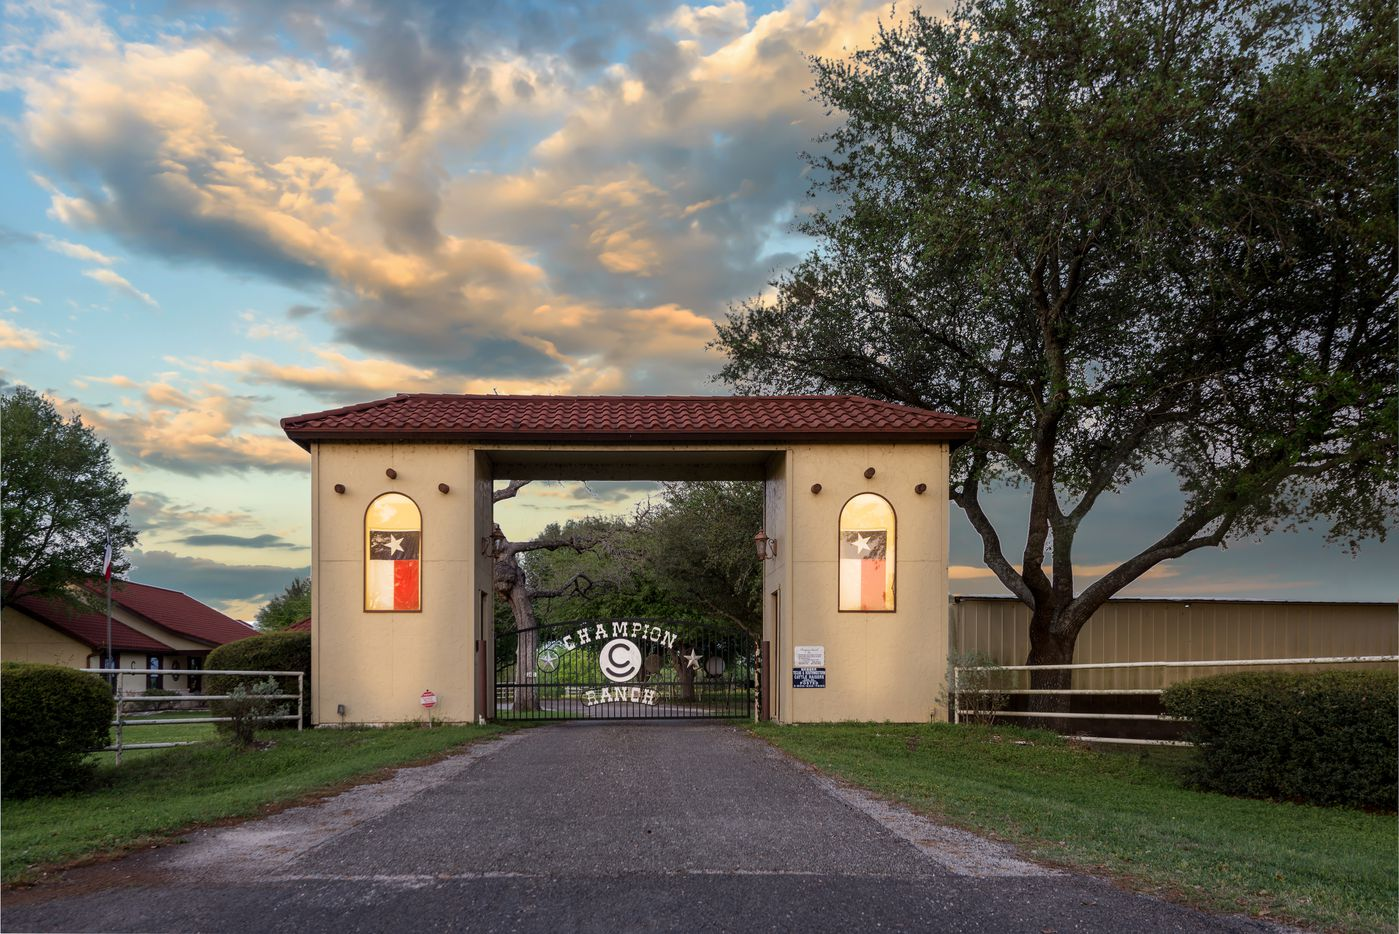 Dick Wallrath's Champion Ranch is between Dallas and Houston.